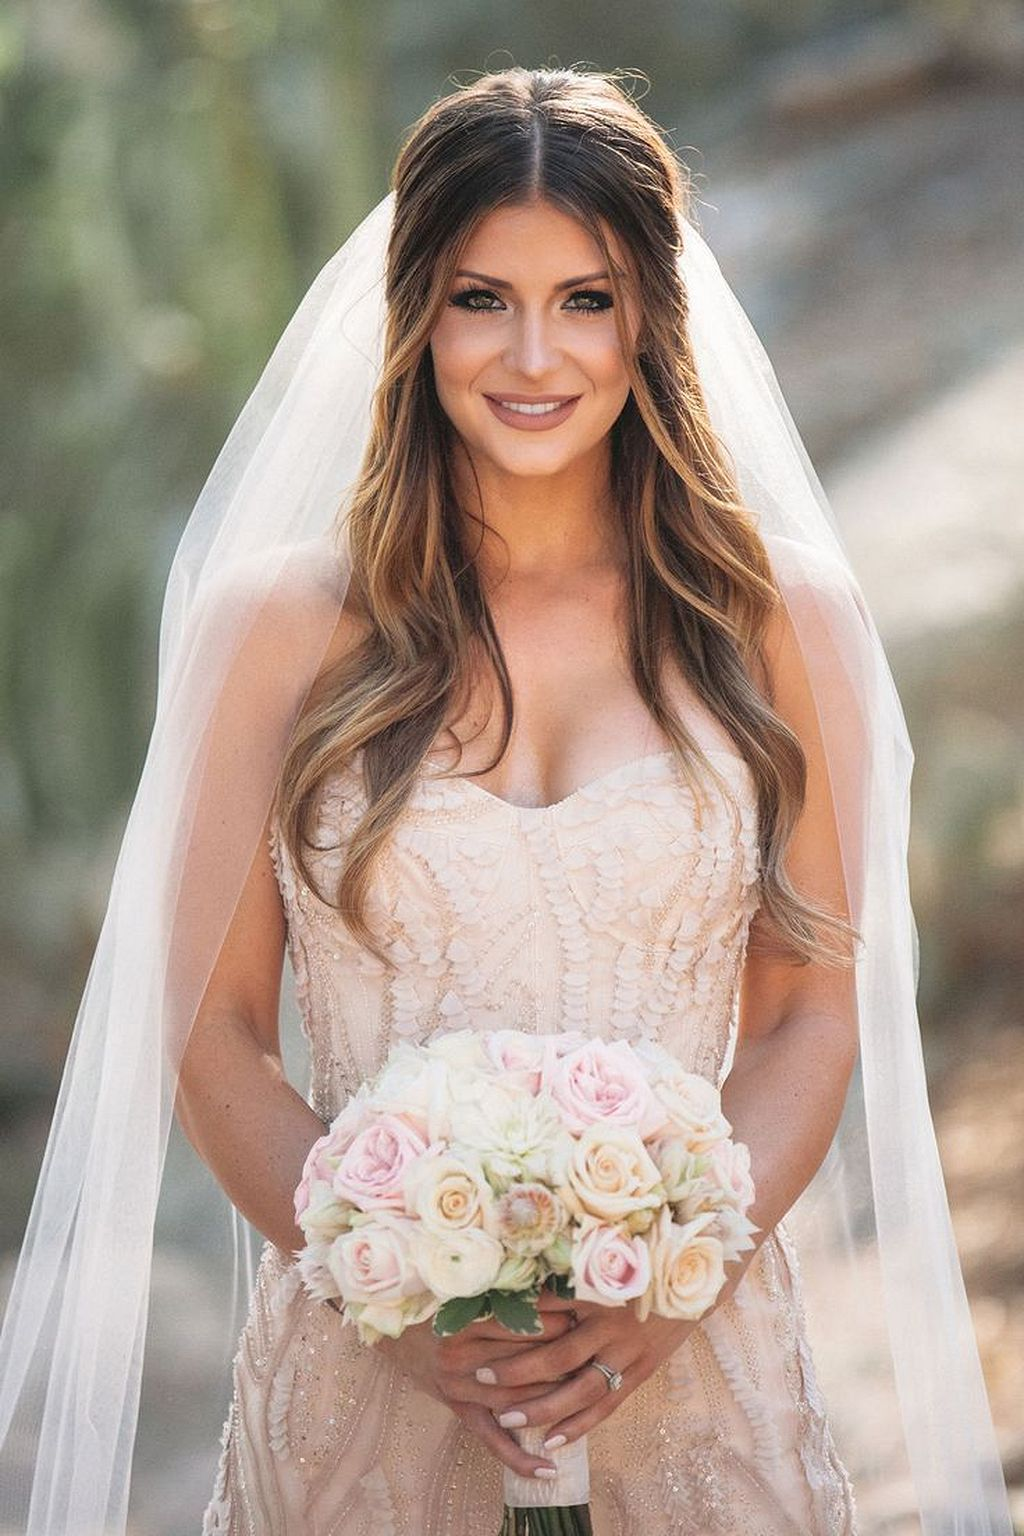 Great 40 wedding hair down with veil ideas httpsweddmagz40 great 40 wedding hair down with veil ideas httpsweddmagz junglespirit Choice Image